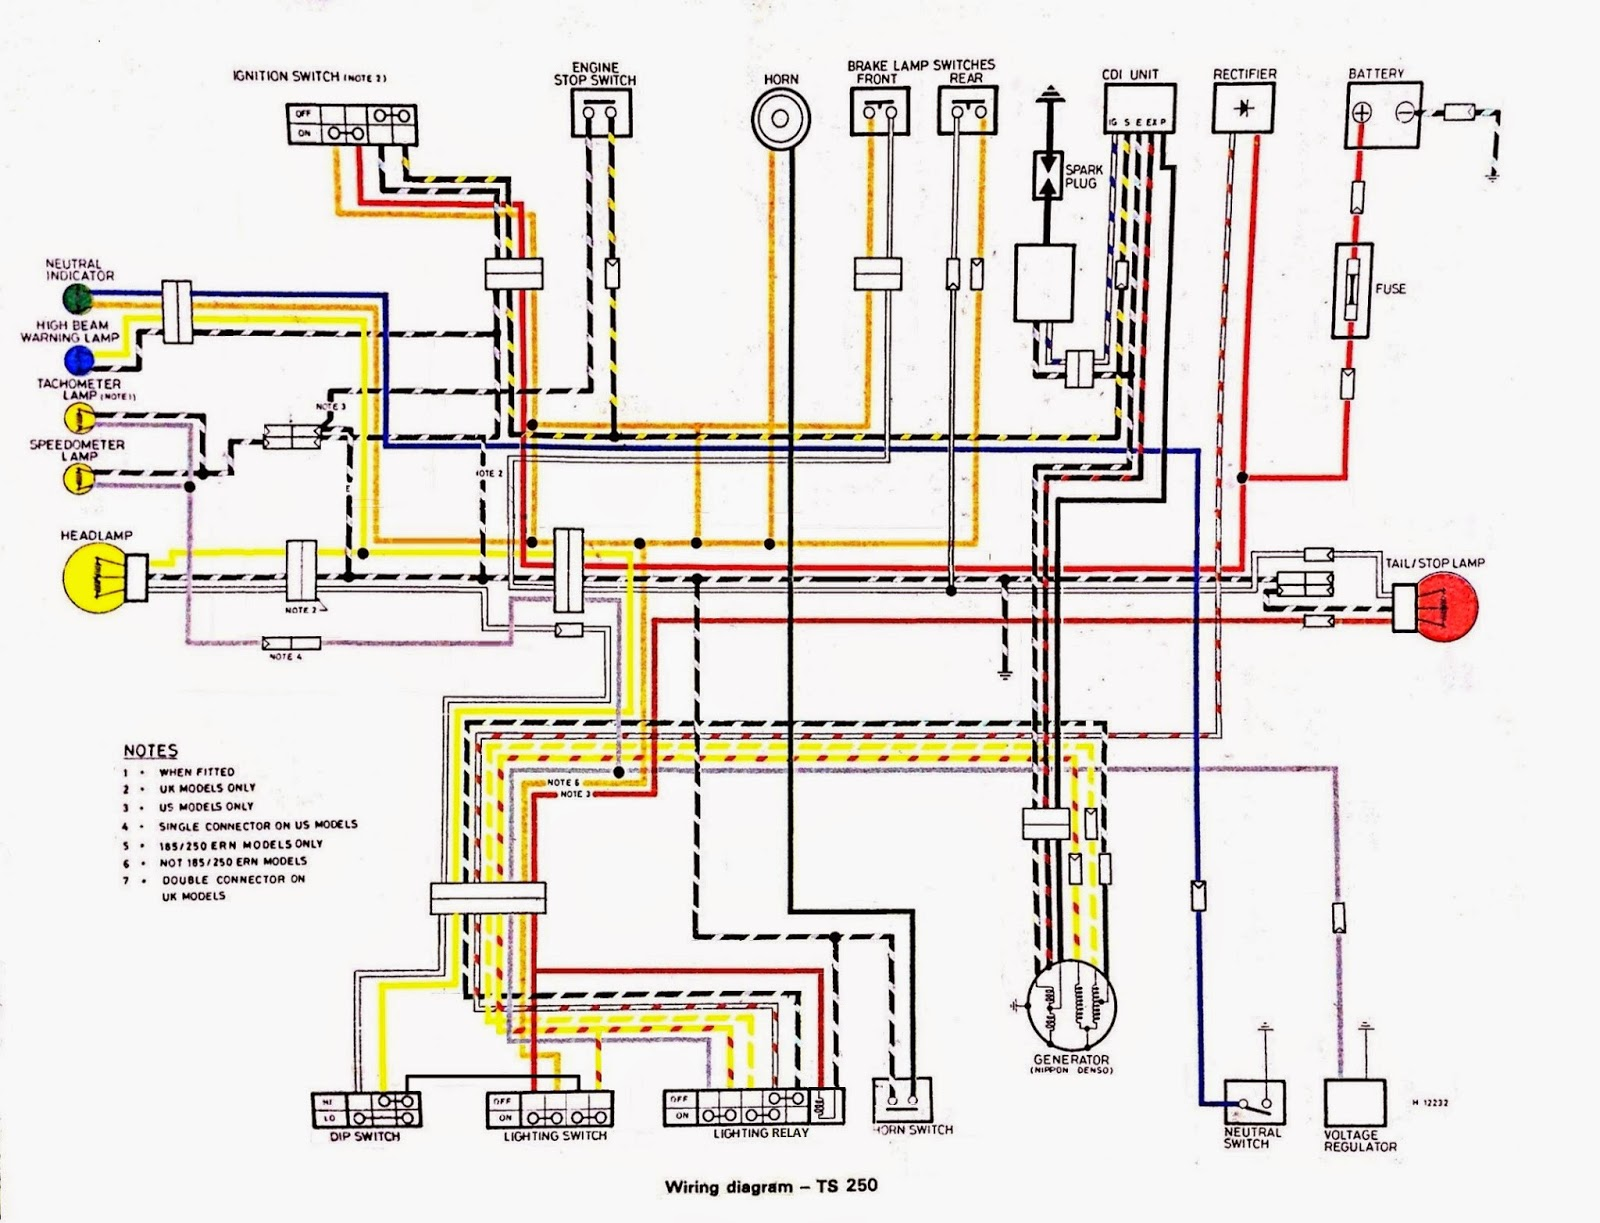 suzuki wiring diagram 1980 gs 550 suzuki wiring diagram